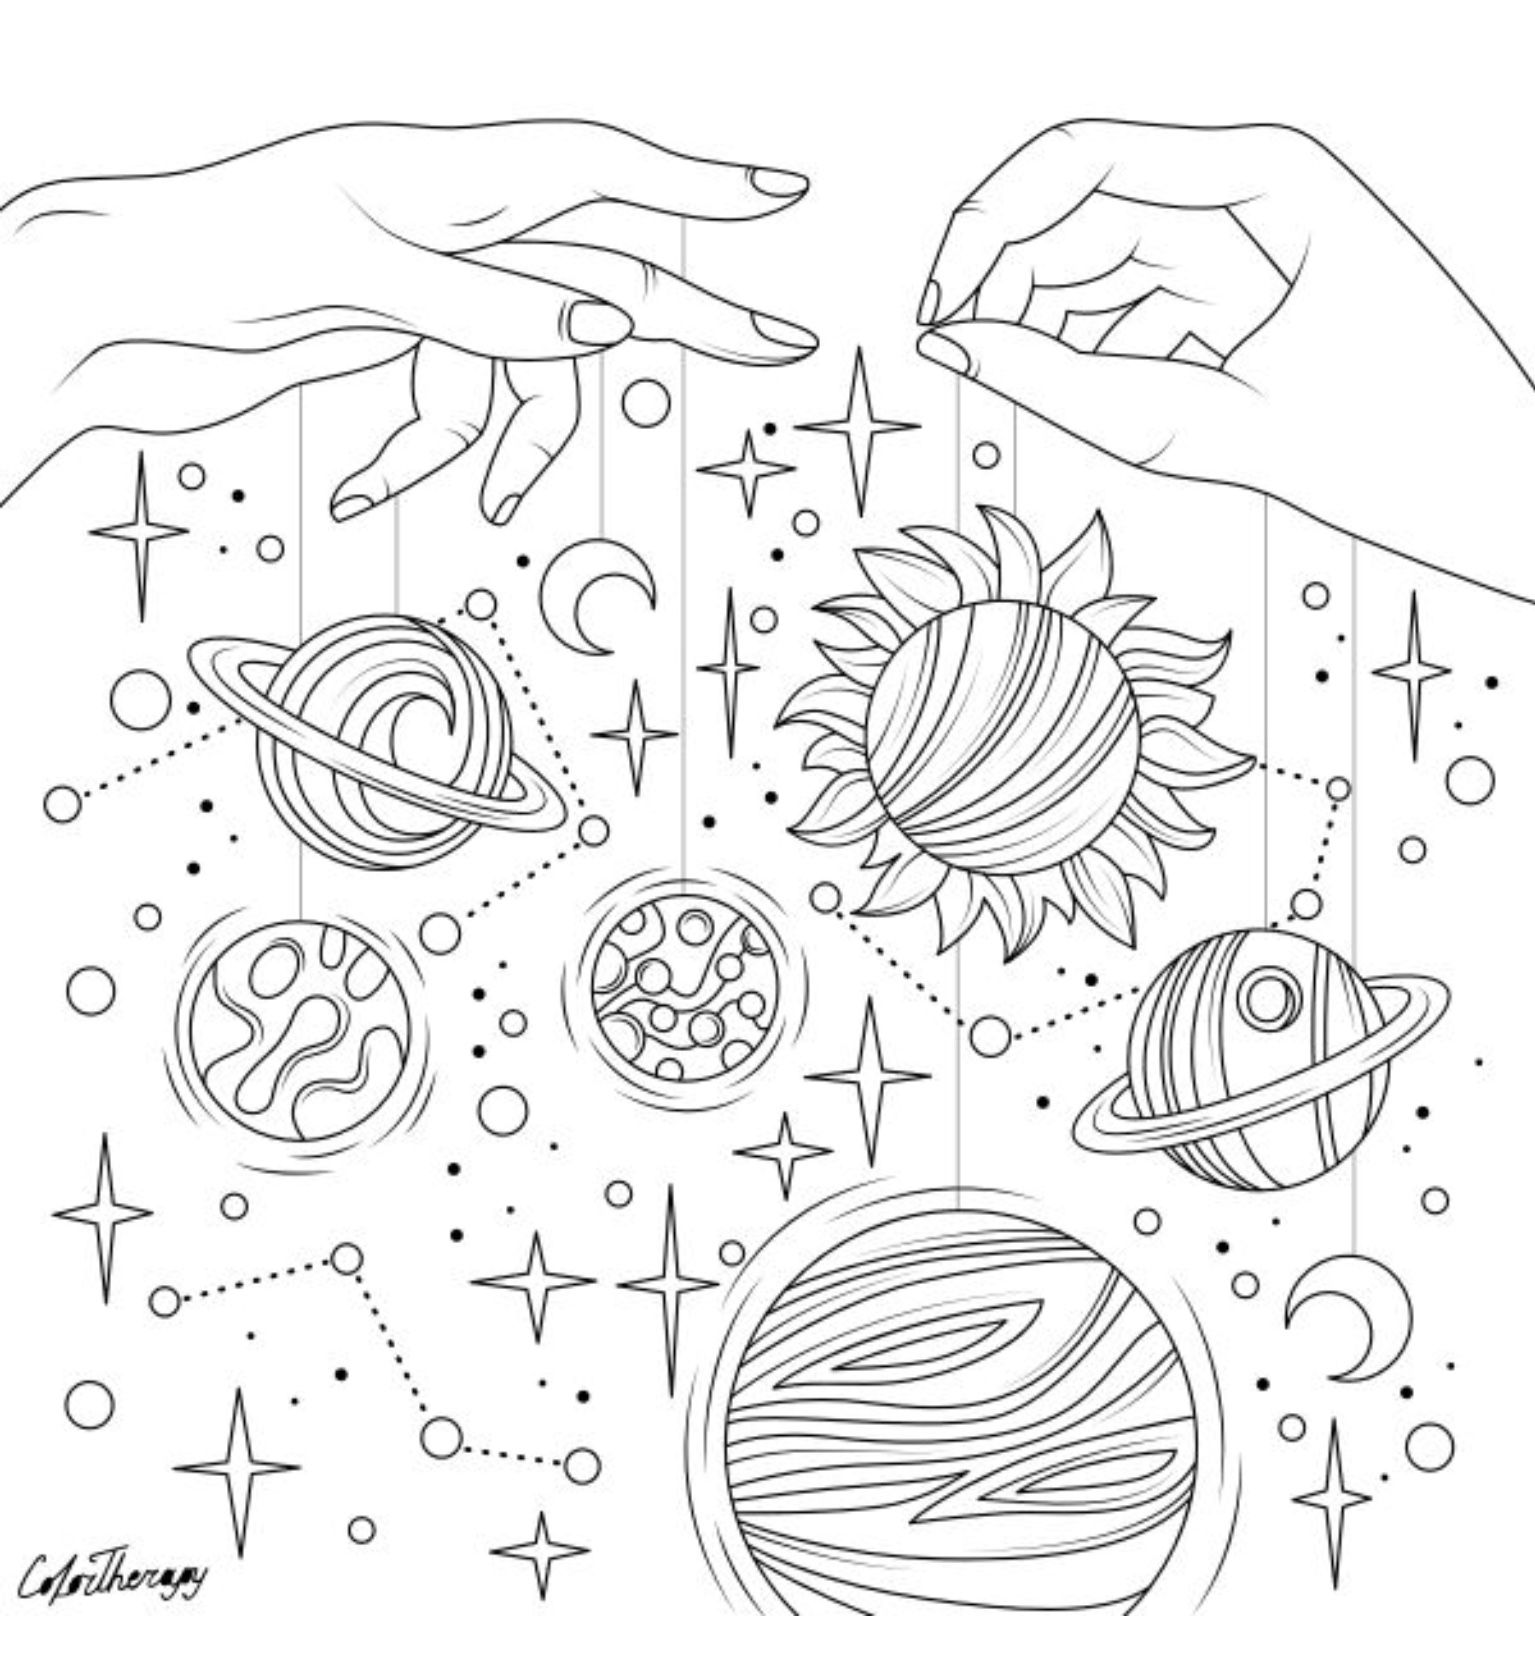 The Sneakpeek For The Next Gift Of The Day Tomorrow Do You Like This One Hands Holding Planet Coloring Pages Star Coloring Pages Space Coloring Pages